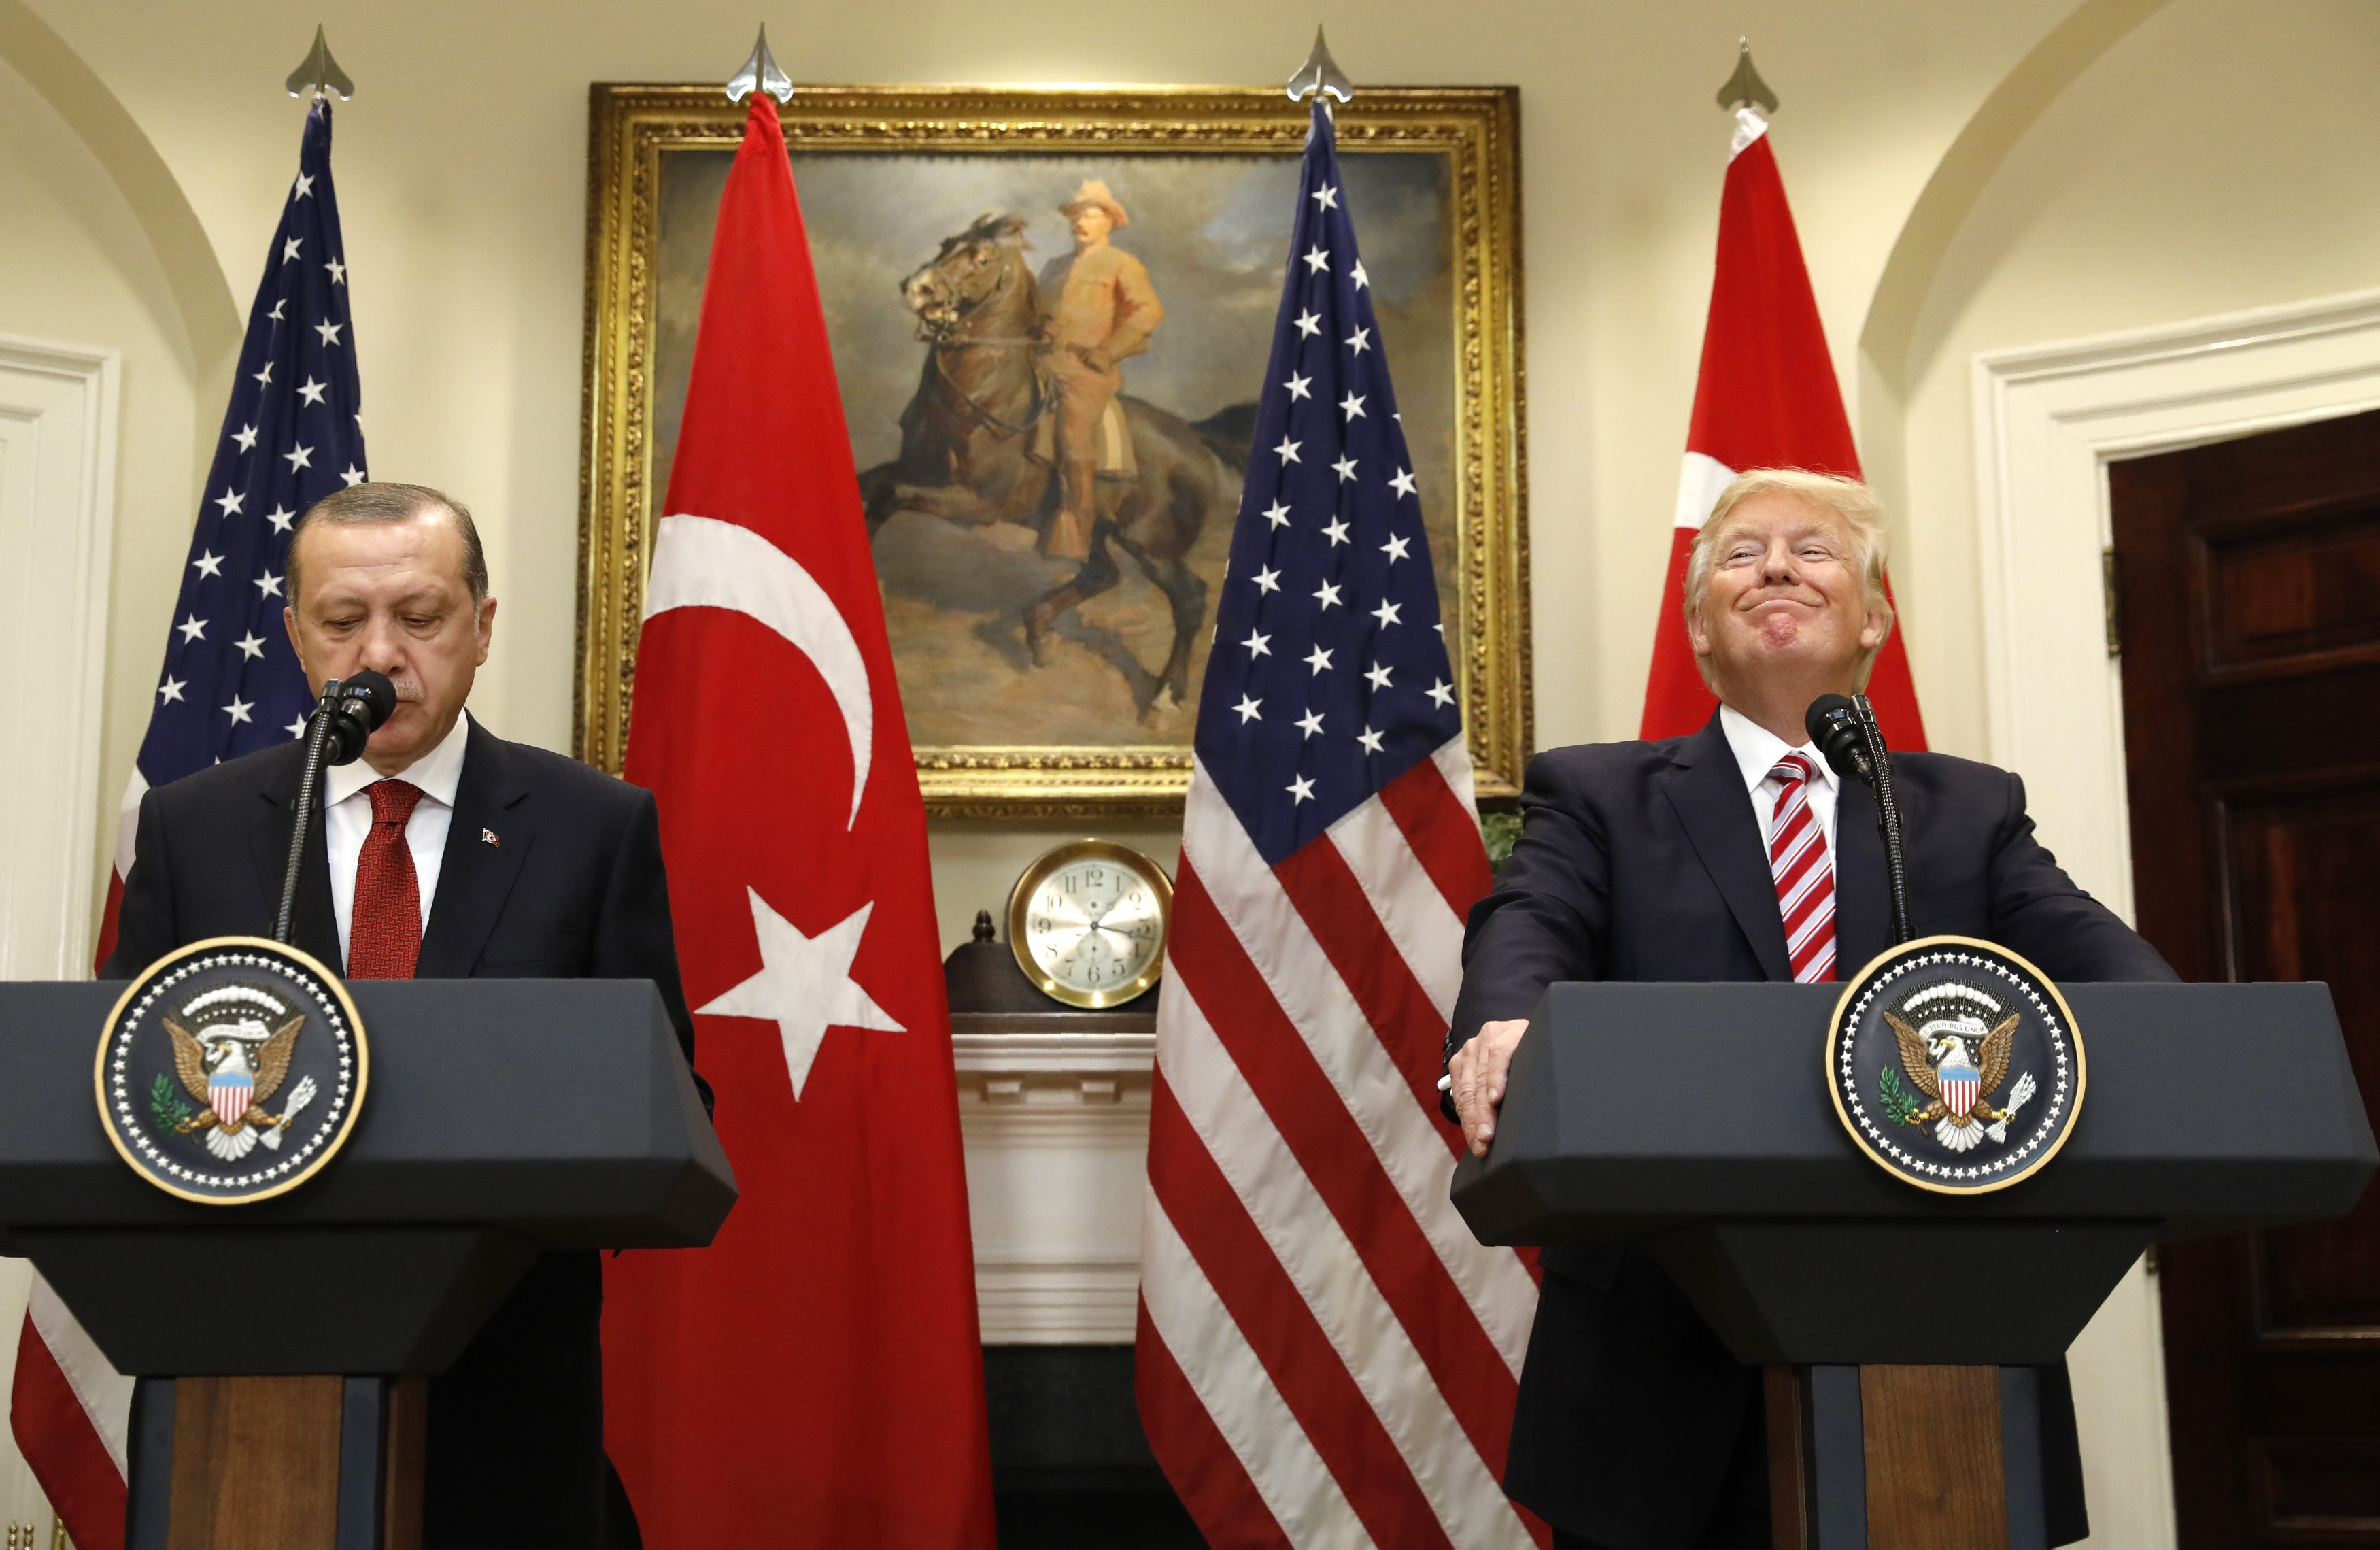 Turkey's President Recep Tayyip Erdogan (L) and U.S President Donald Trump deliver statements to reporters in the Roosevelt Room of the White House in Washington, U.S. May 16, 2017. REUTERS/Kevin Lamarque